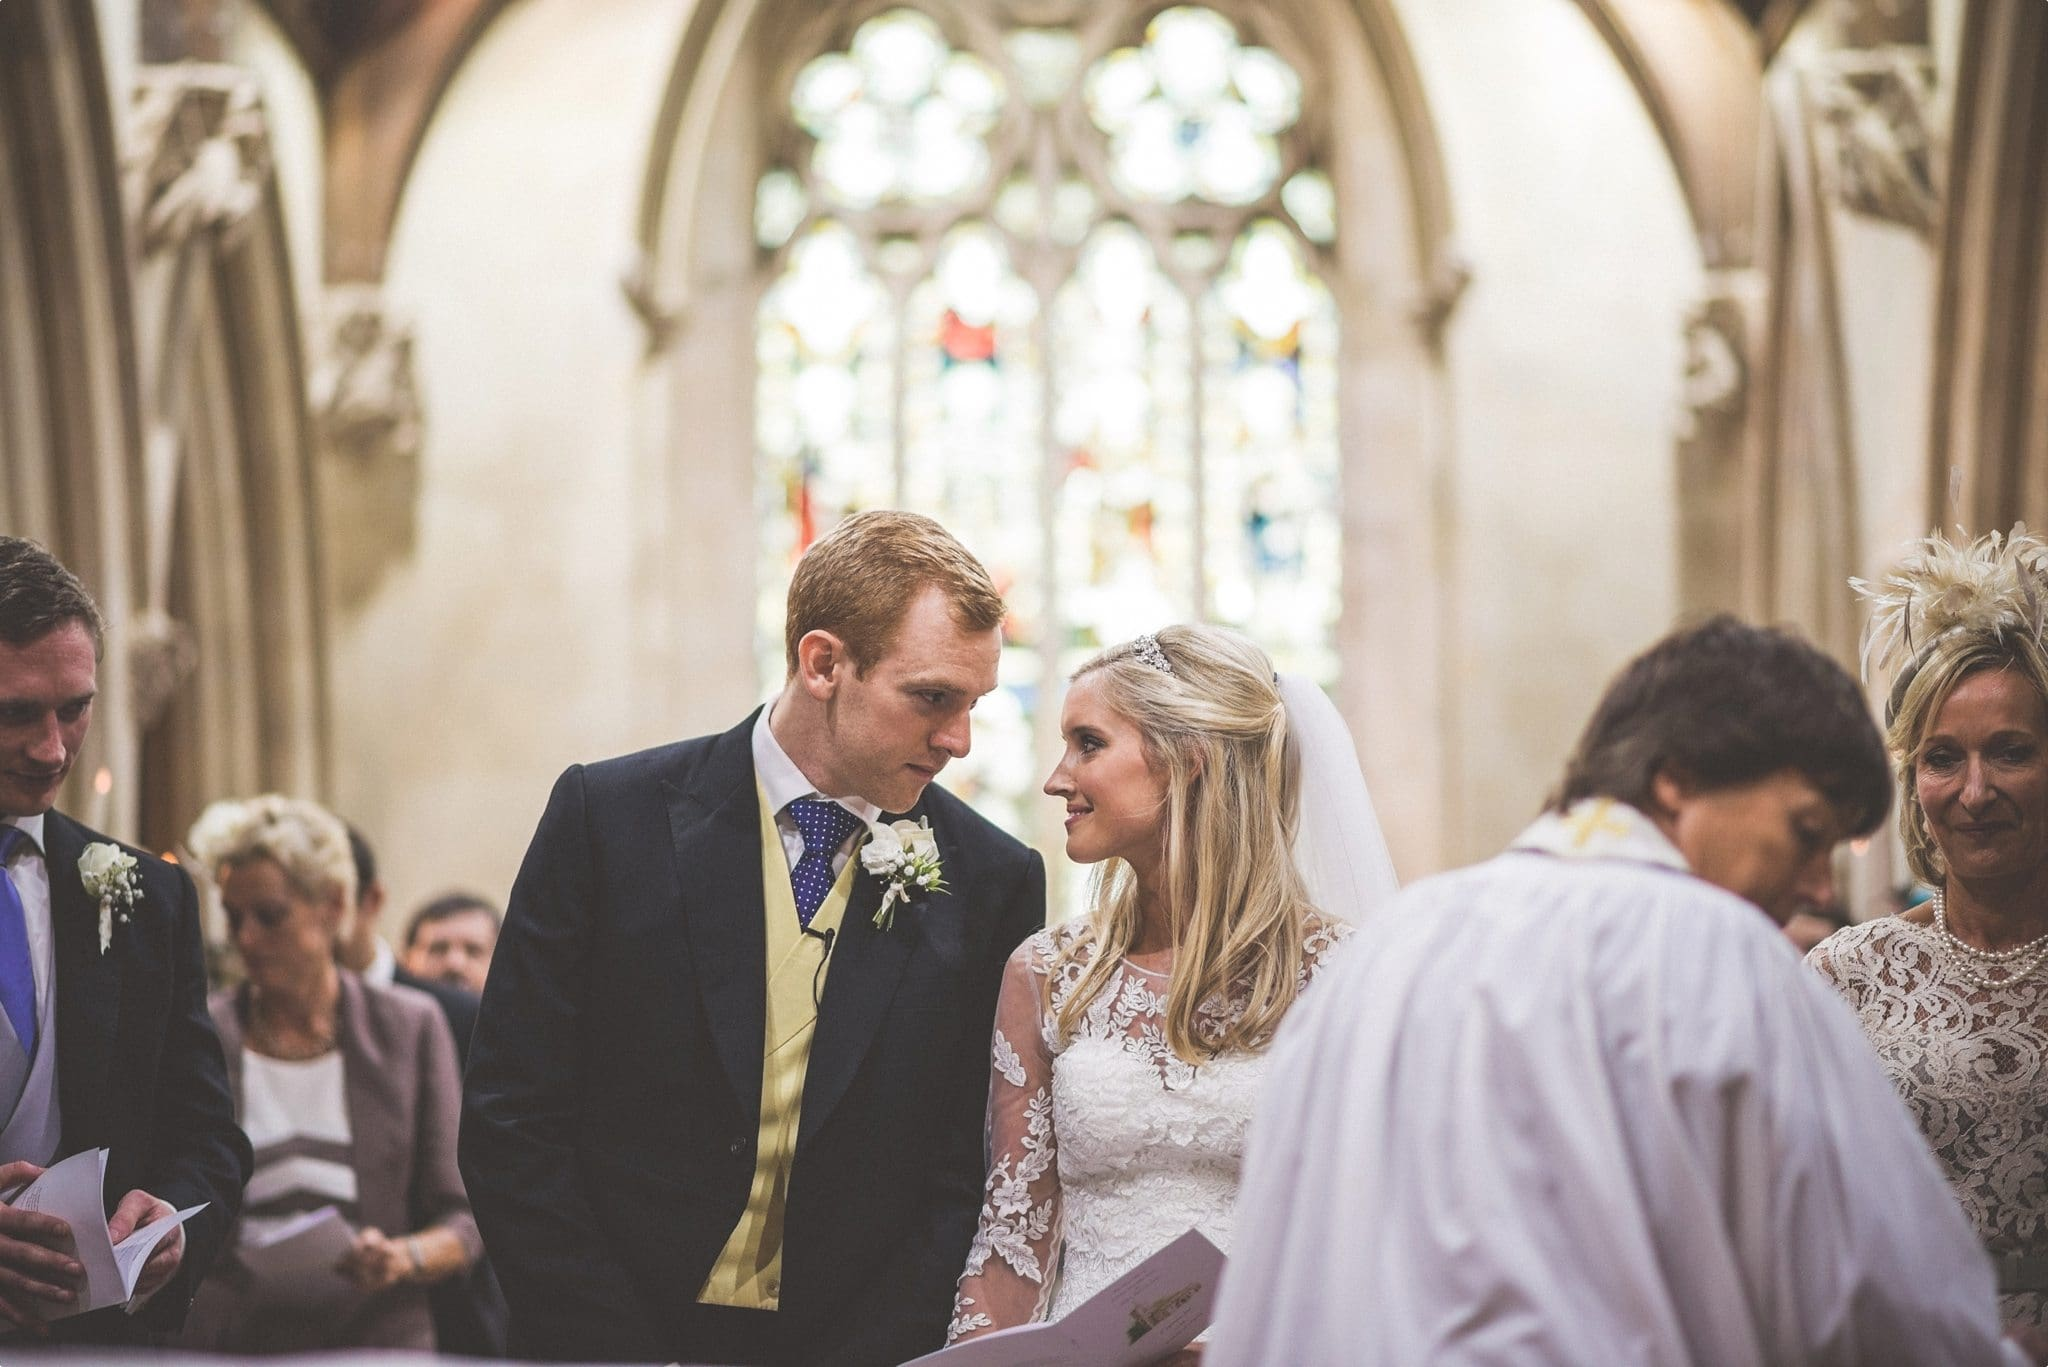 st-audries-park-wedding-maria-assia-photography-290